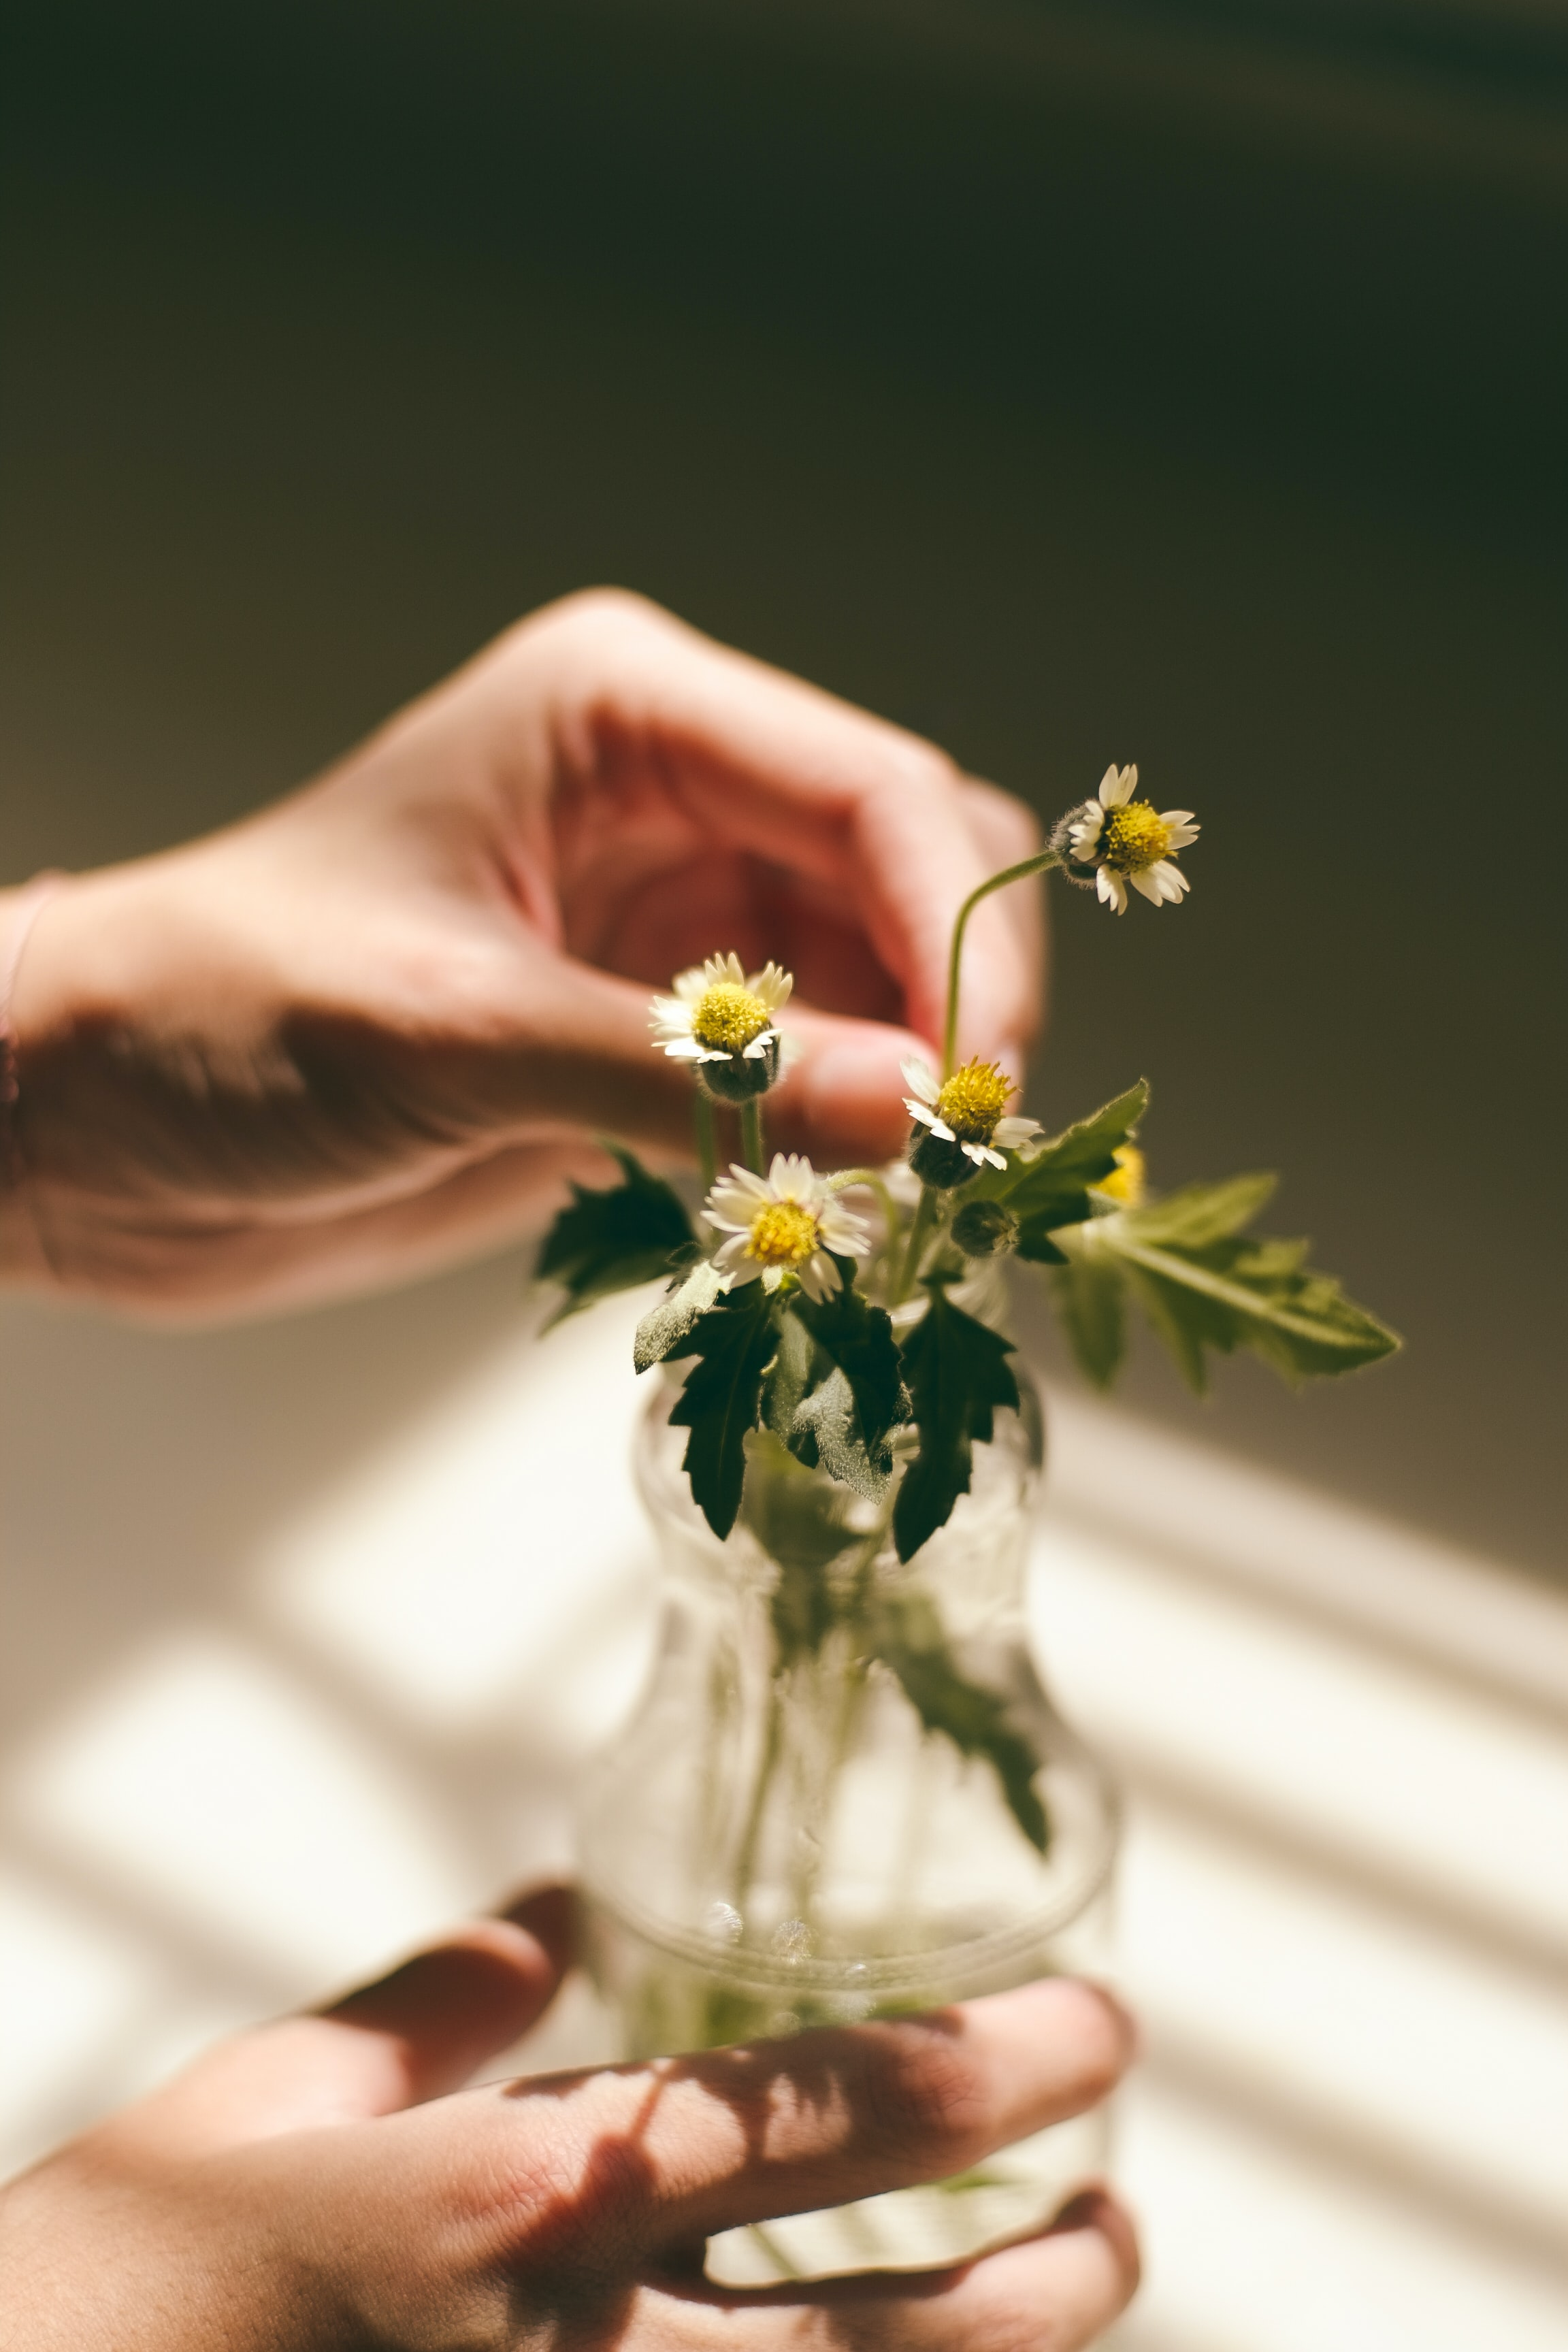 A person's hands touching small white flowers in a glass bottle